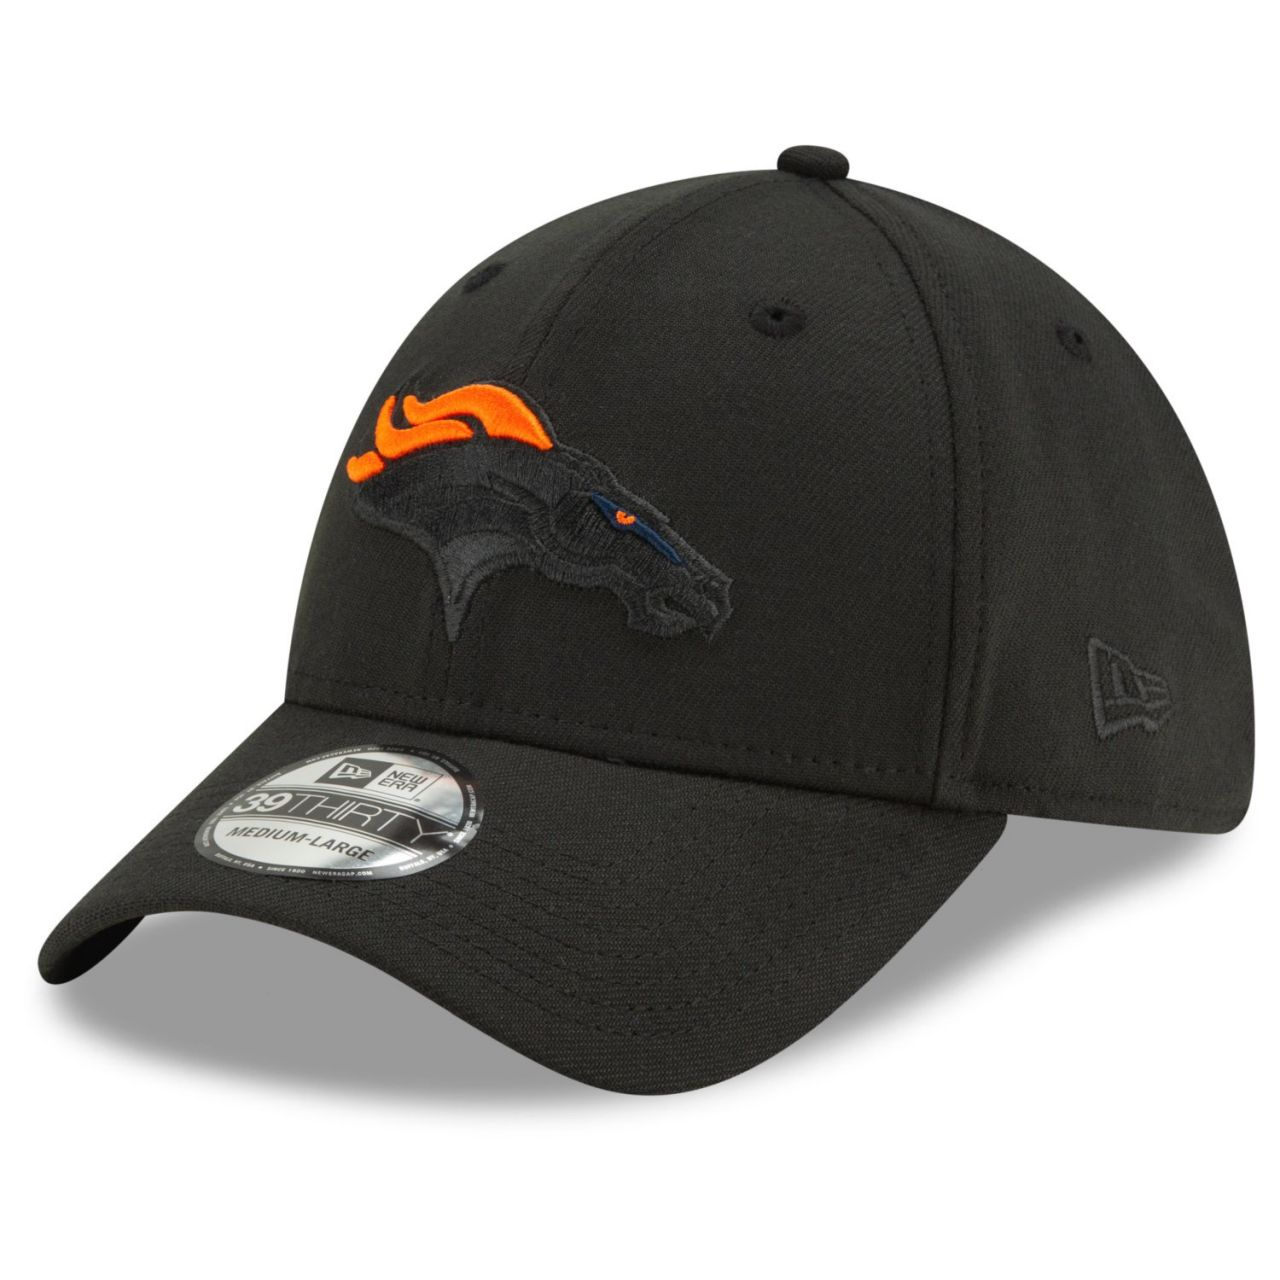 amfoo - New Era 39Thirty Stretch Cap - ELEMENTS Denver Broncos